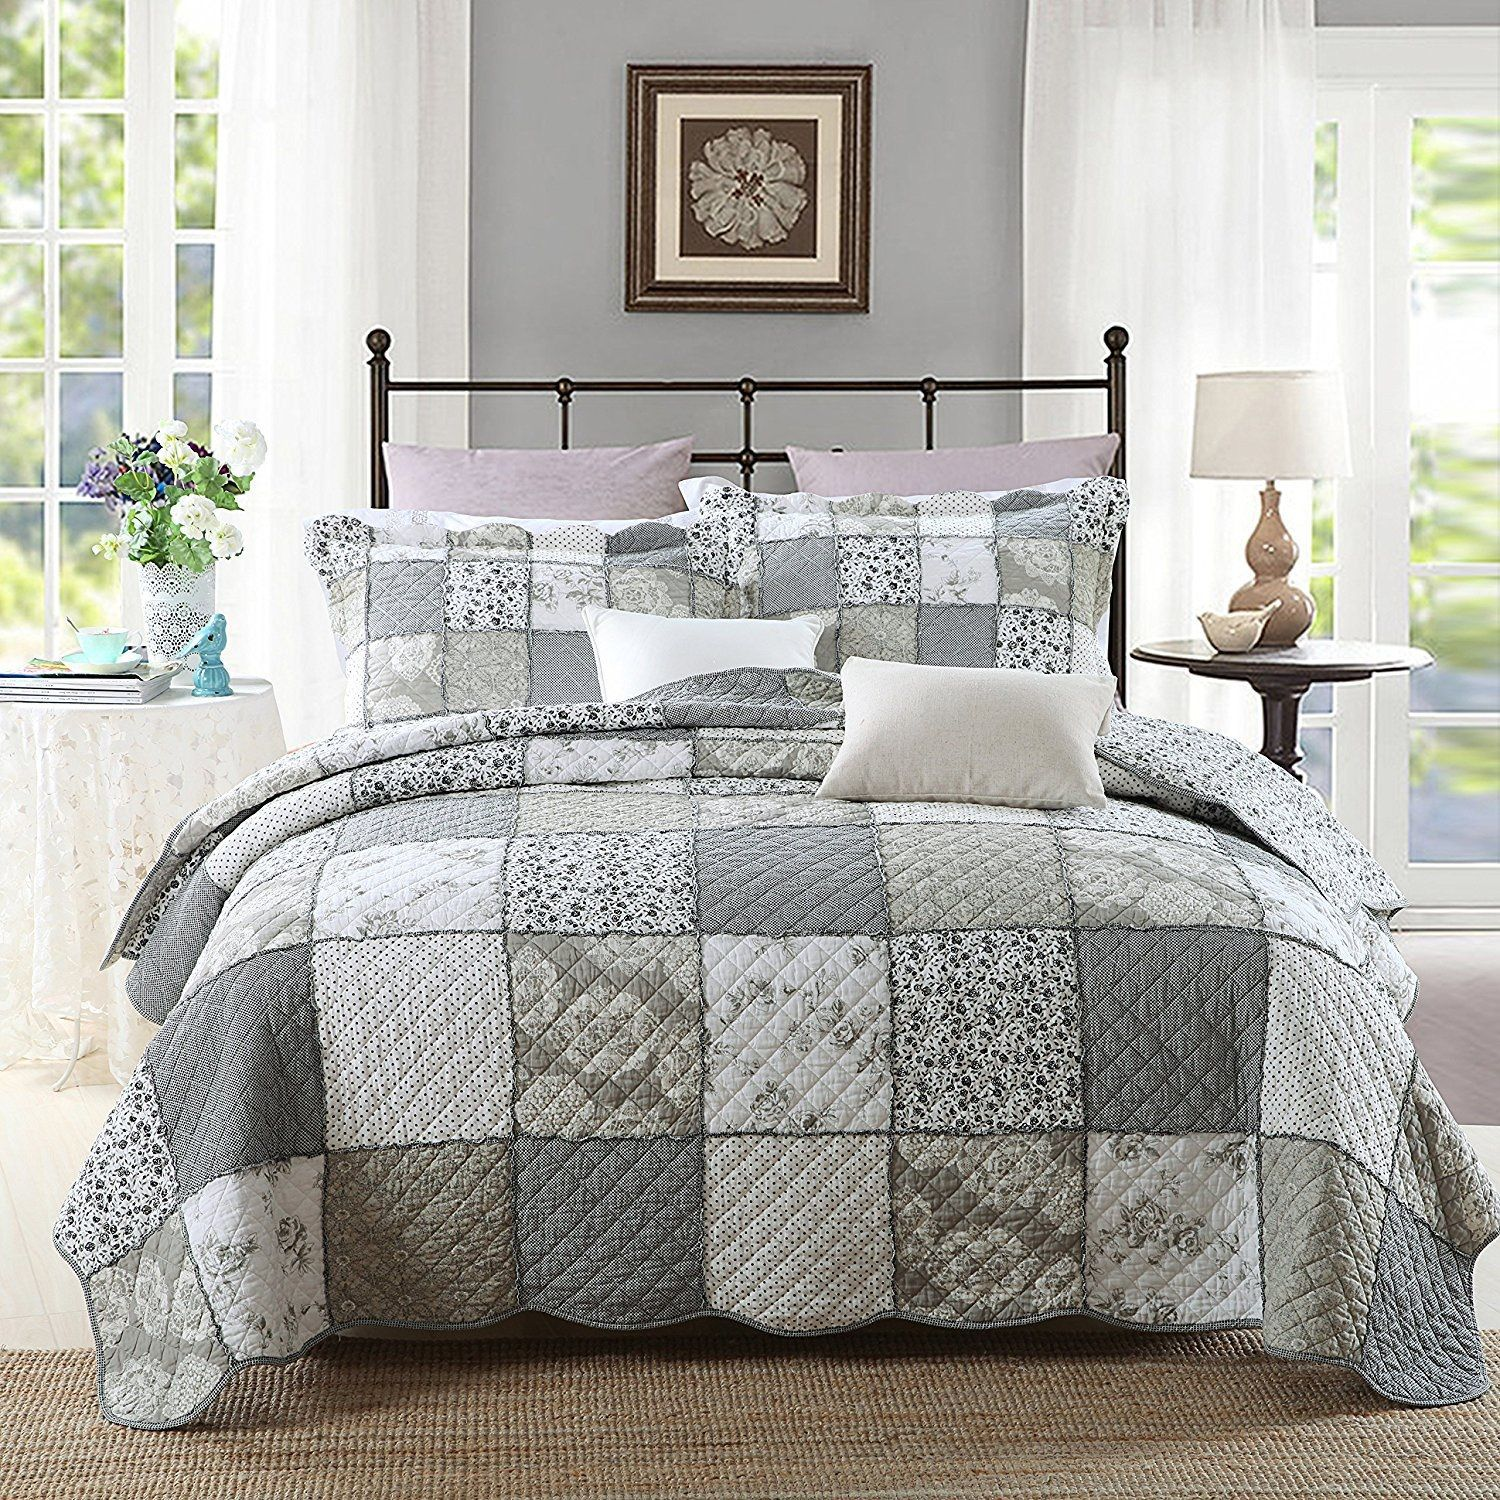 200 Coastal Bedding Sets And Beach Bedding Sets For 2020 Beachfront Decor In 2020 Coastal Bedding Sets Bed Decor Beach Bedding Sets